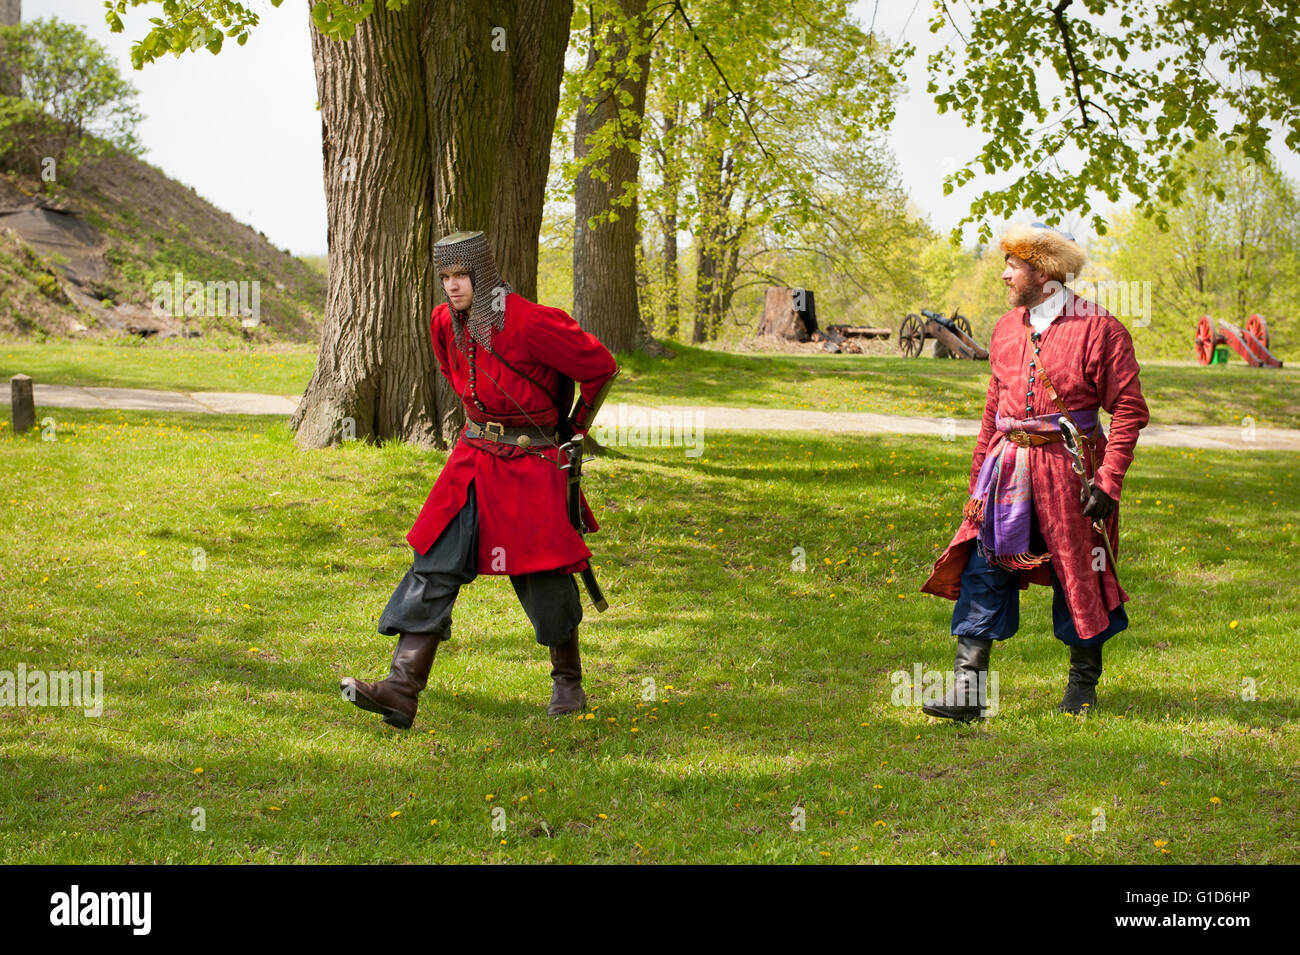 May day picnic re-creation in Janowiec Castle event of Swedes assault on the castle, historical battle reenactment - Stock Image